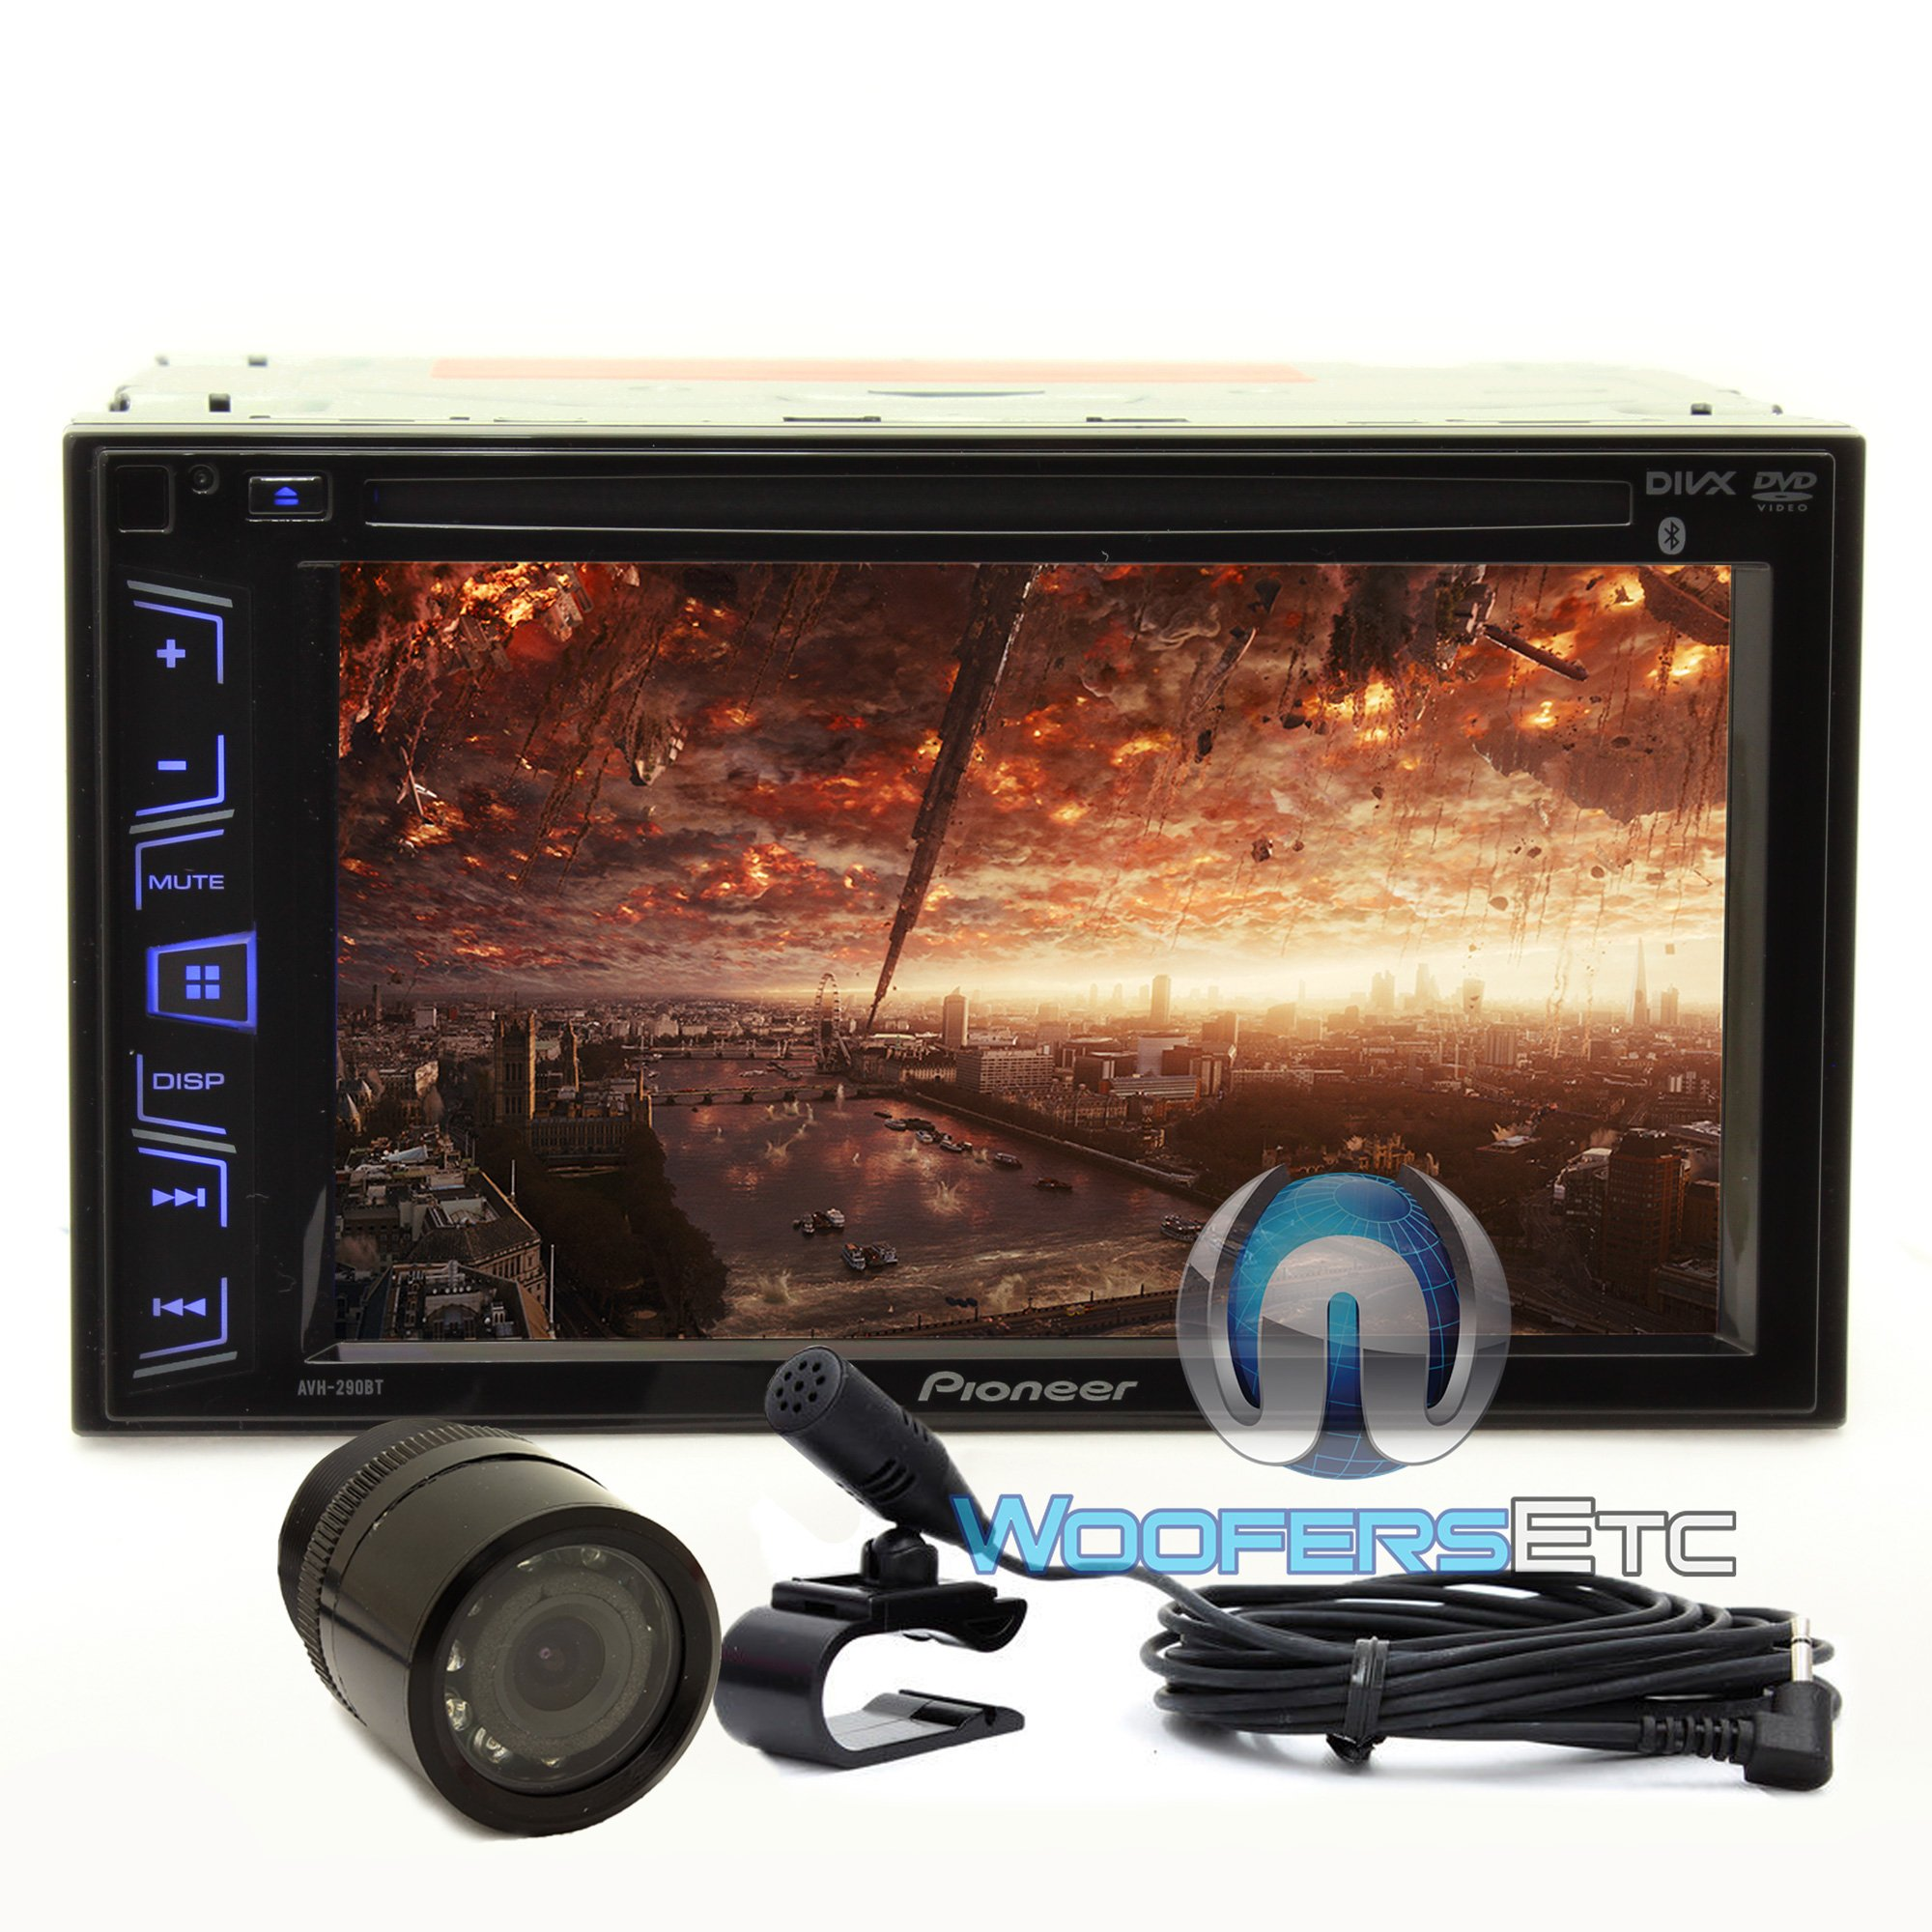 Pkg Pioneer AVH-290BT In-Dash 2-DIN 6.2'' Touchscreen DVD/MP3 Car Stereo Receiver with Bluetooth and iPod/iPhone Control + XO Vision HTC35 Waterproof Backup Camera with Nightvision by Pioneer